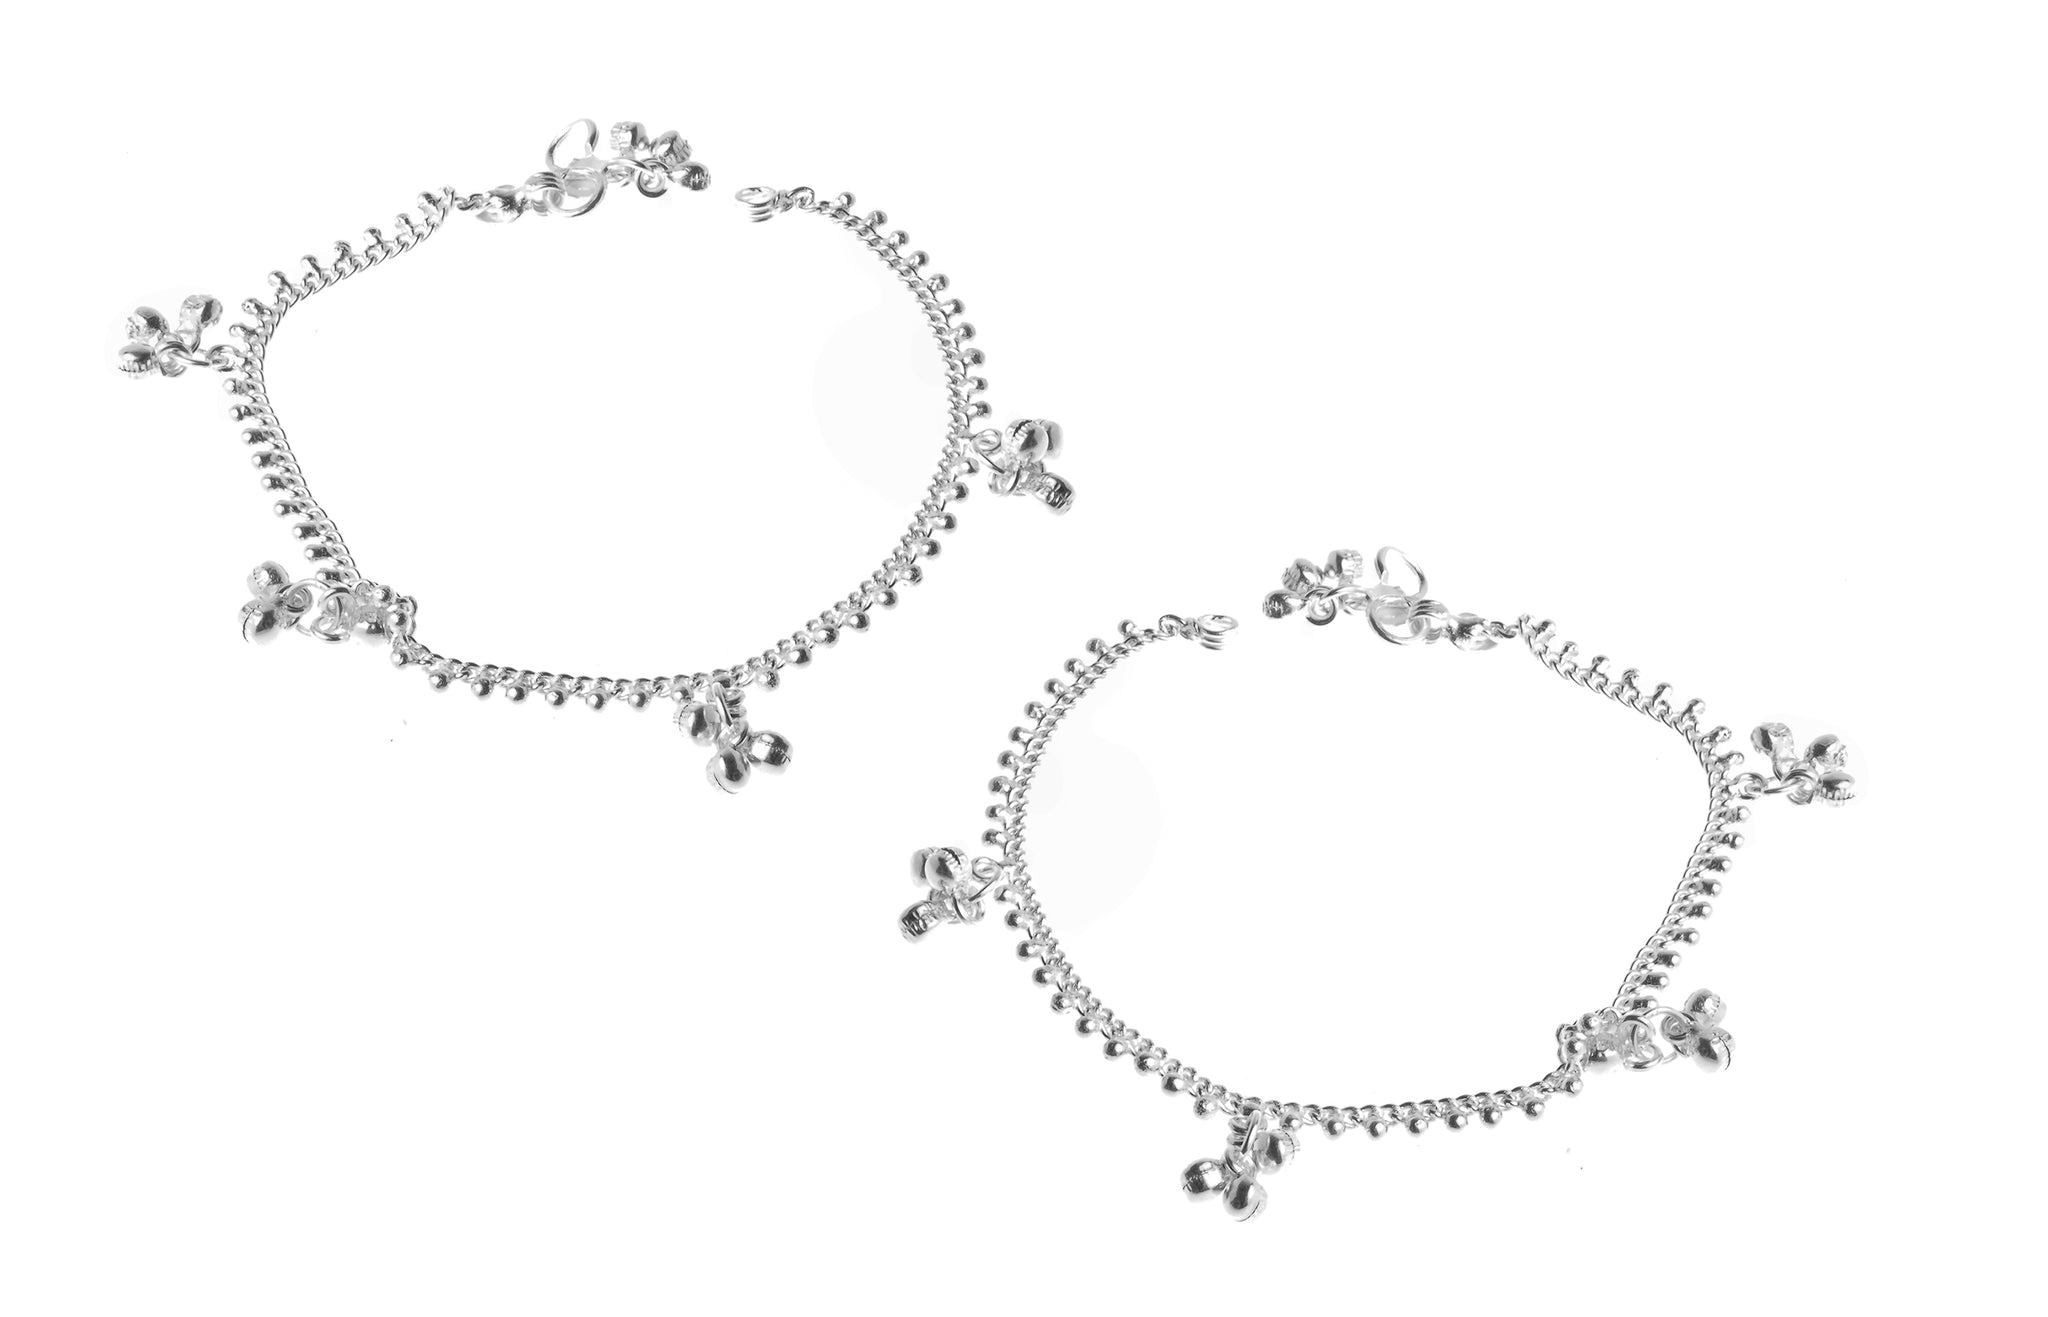 Silver Anklets with Ghughri Bell Charms A-7157 - Pair